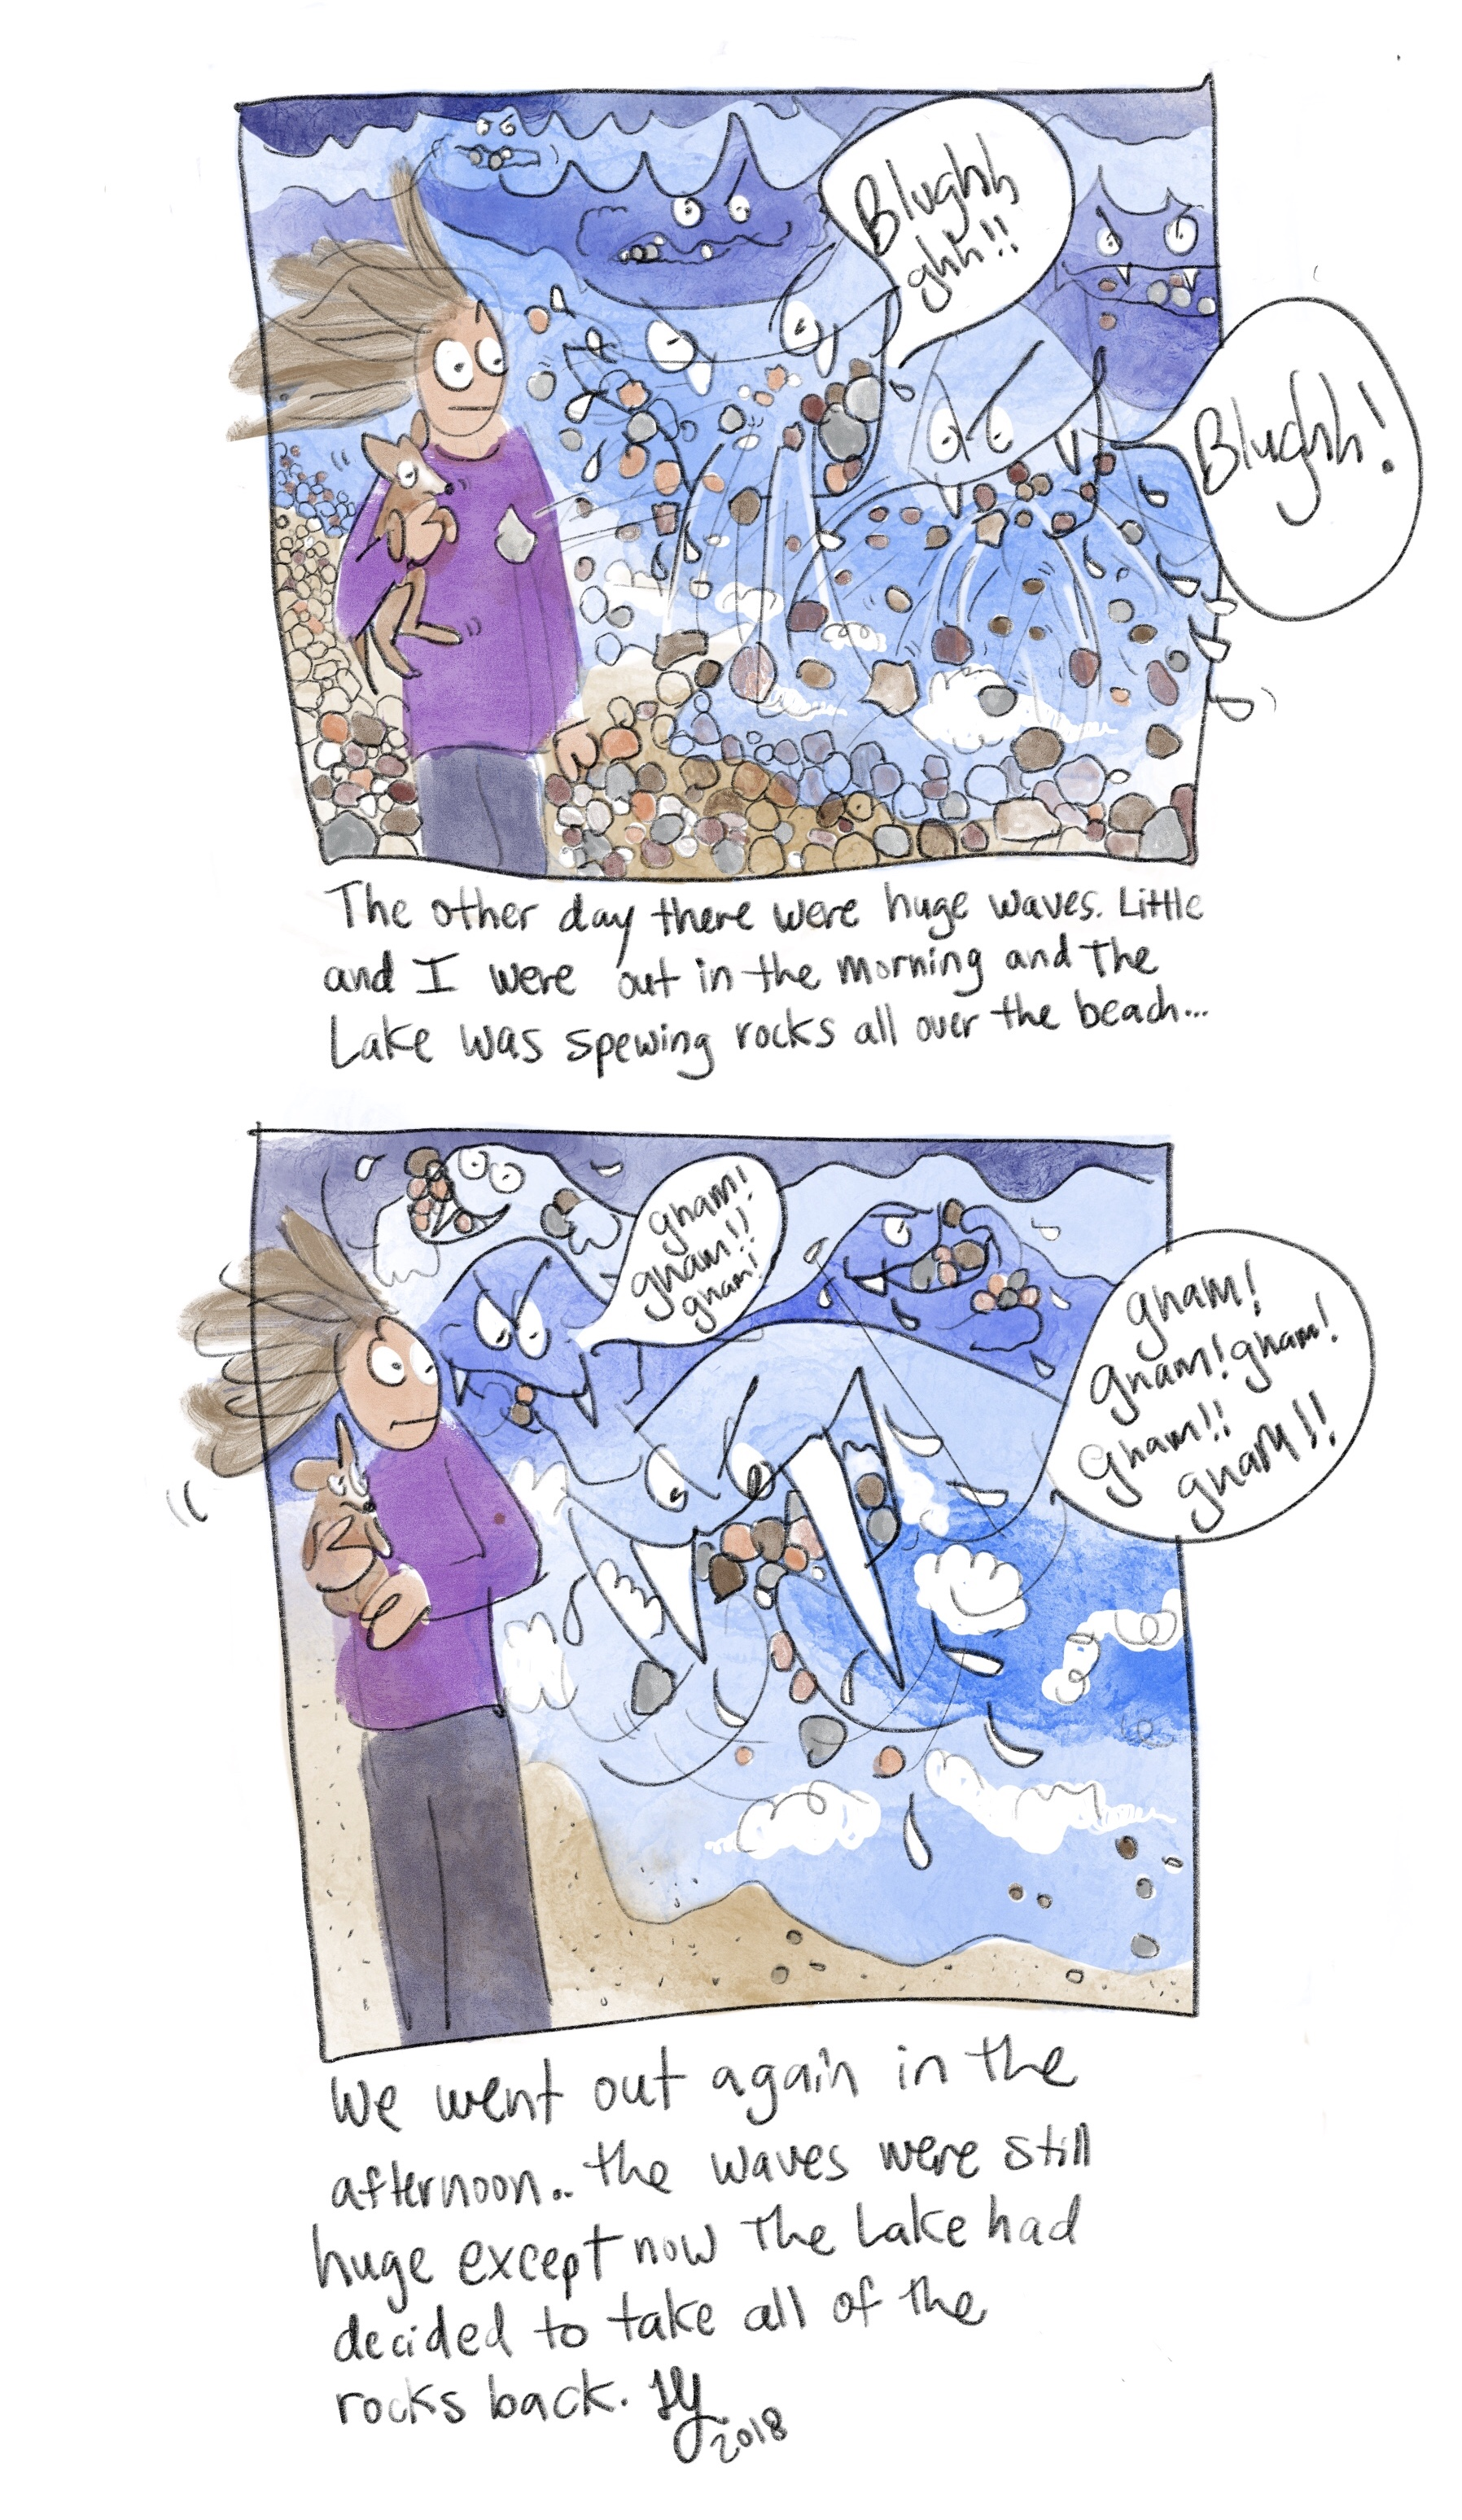 This is another silly comic about Lake Michigan. The lake puked up a bunch of rocks the other day. Then later in the day, it ate all the rocks. The lake is so weird.